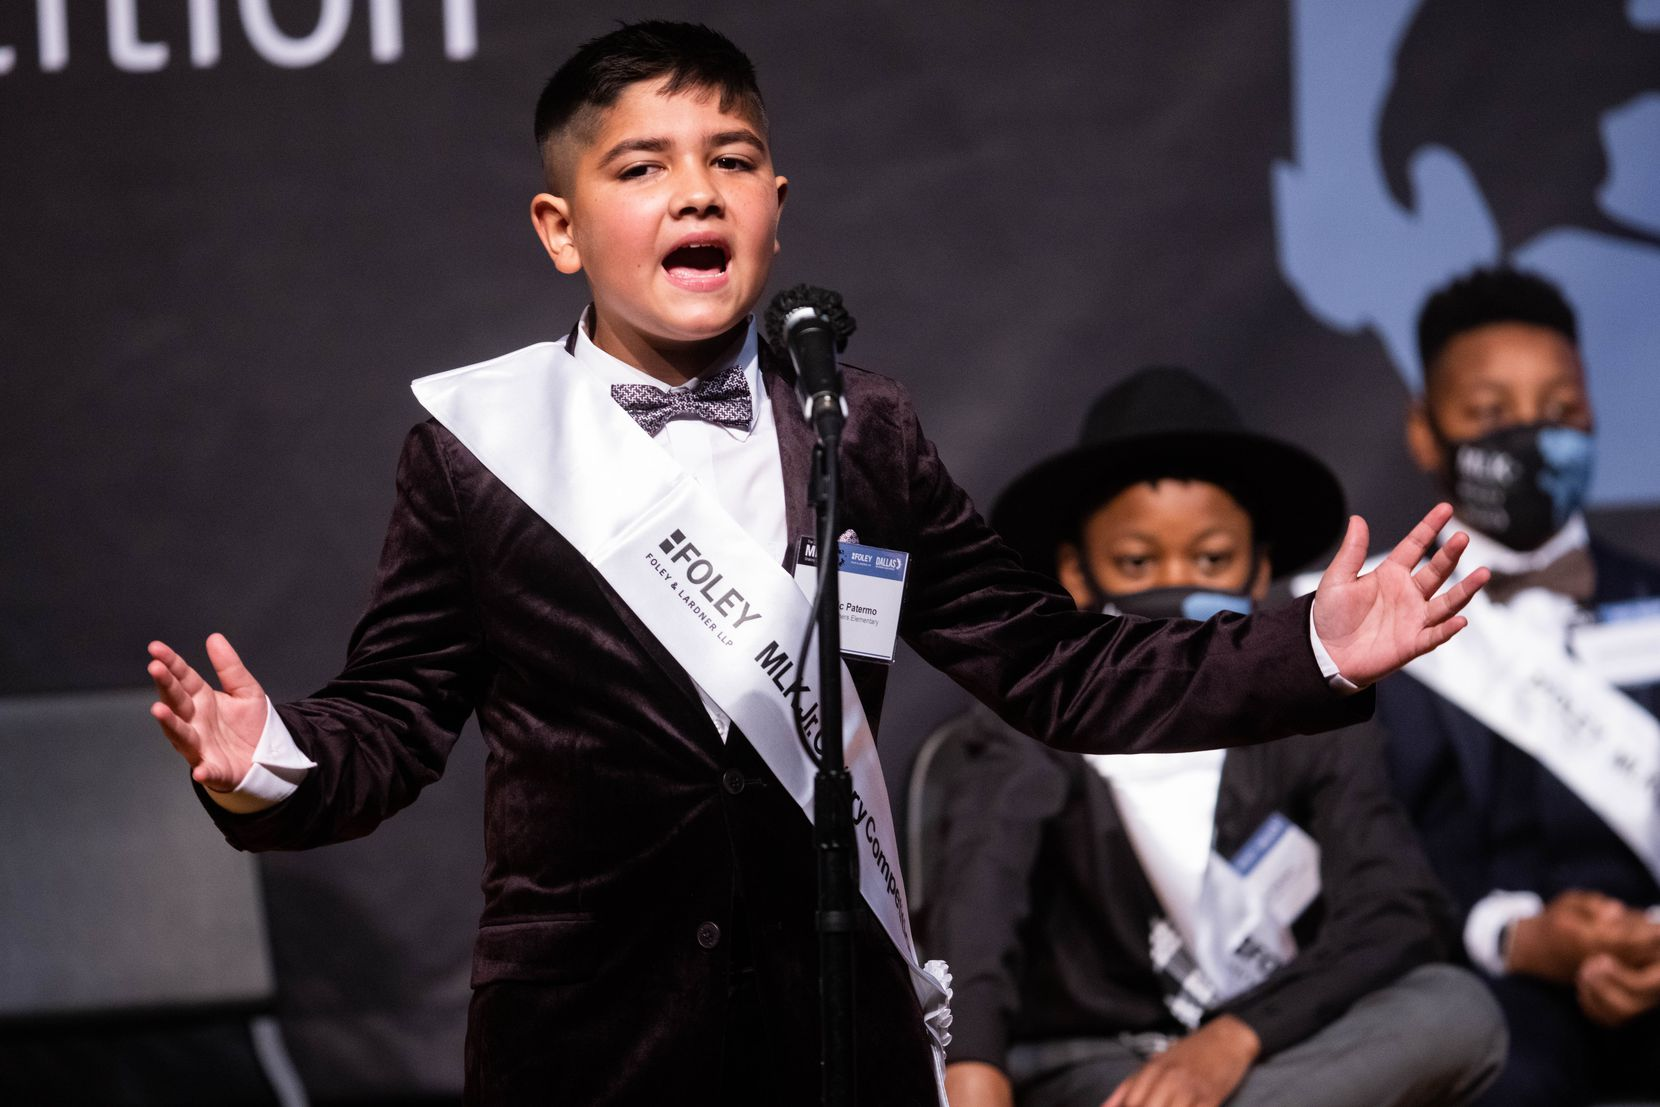 Dominic Patermo, 11, talked about how Martin Luther King Jr.'s teachings would help today, saying racism should not be fought with violence, but with love and kindness at the 29th annual MLK Jr. Oratory Competition.